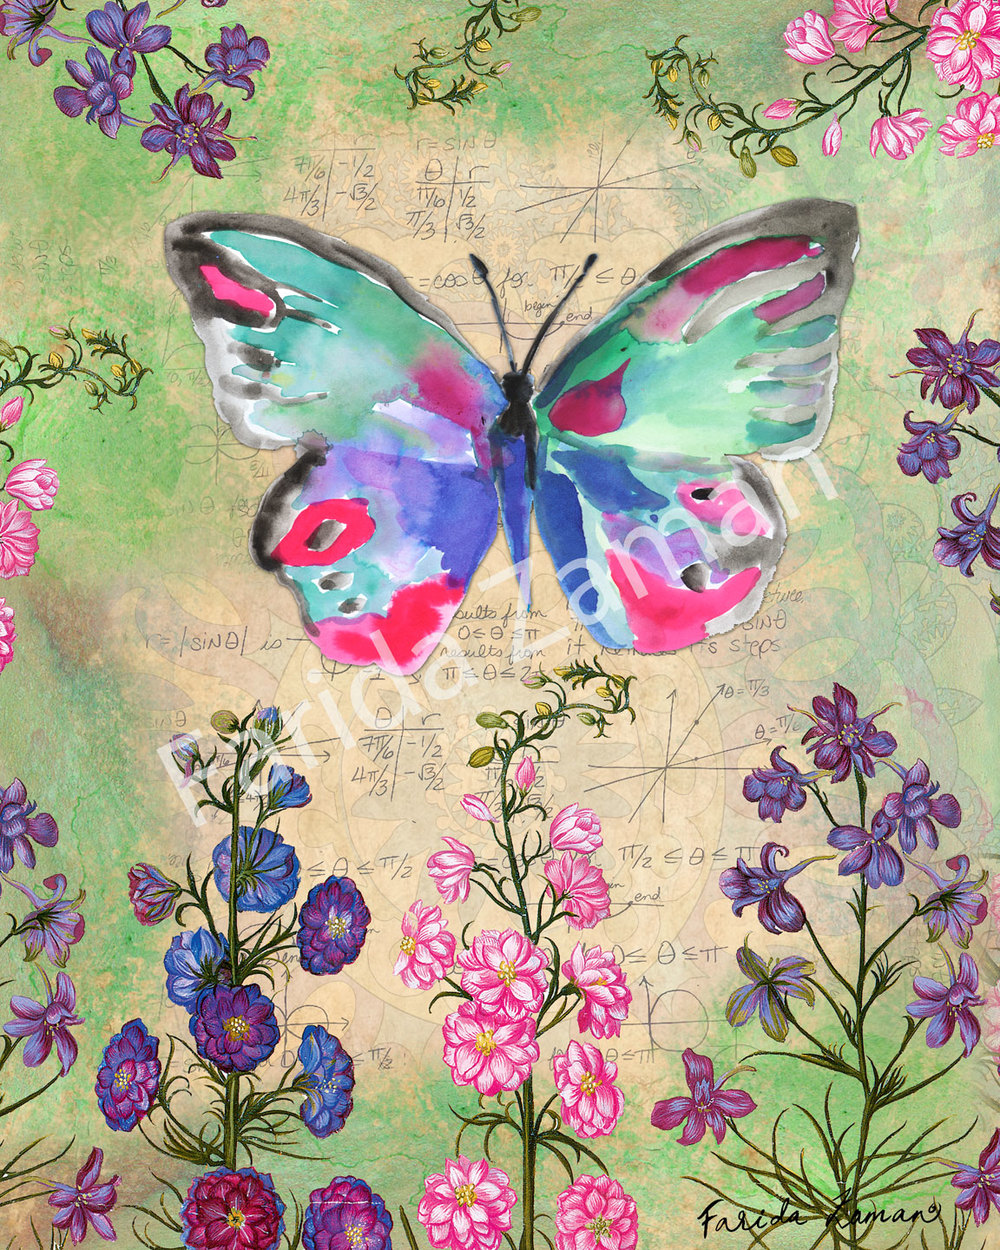 ZAM_EPH_WATERCOLOR_PINK_BLUE_GREENBUTTERFLY_2015_04.jpg